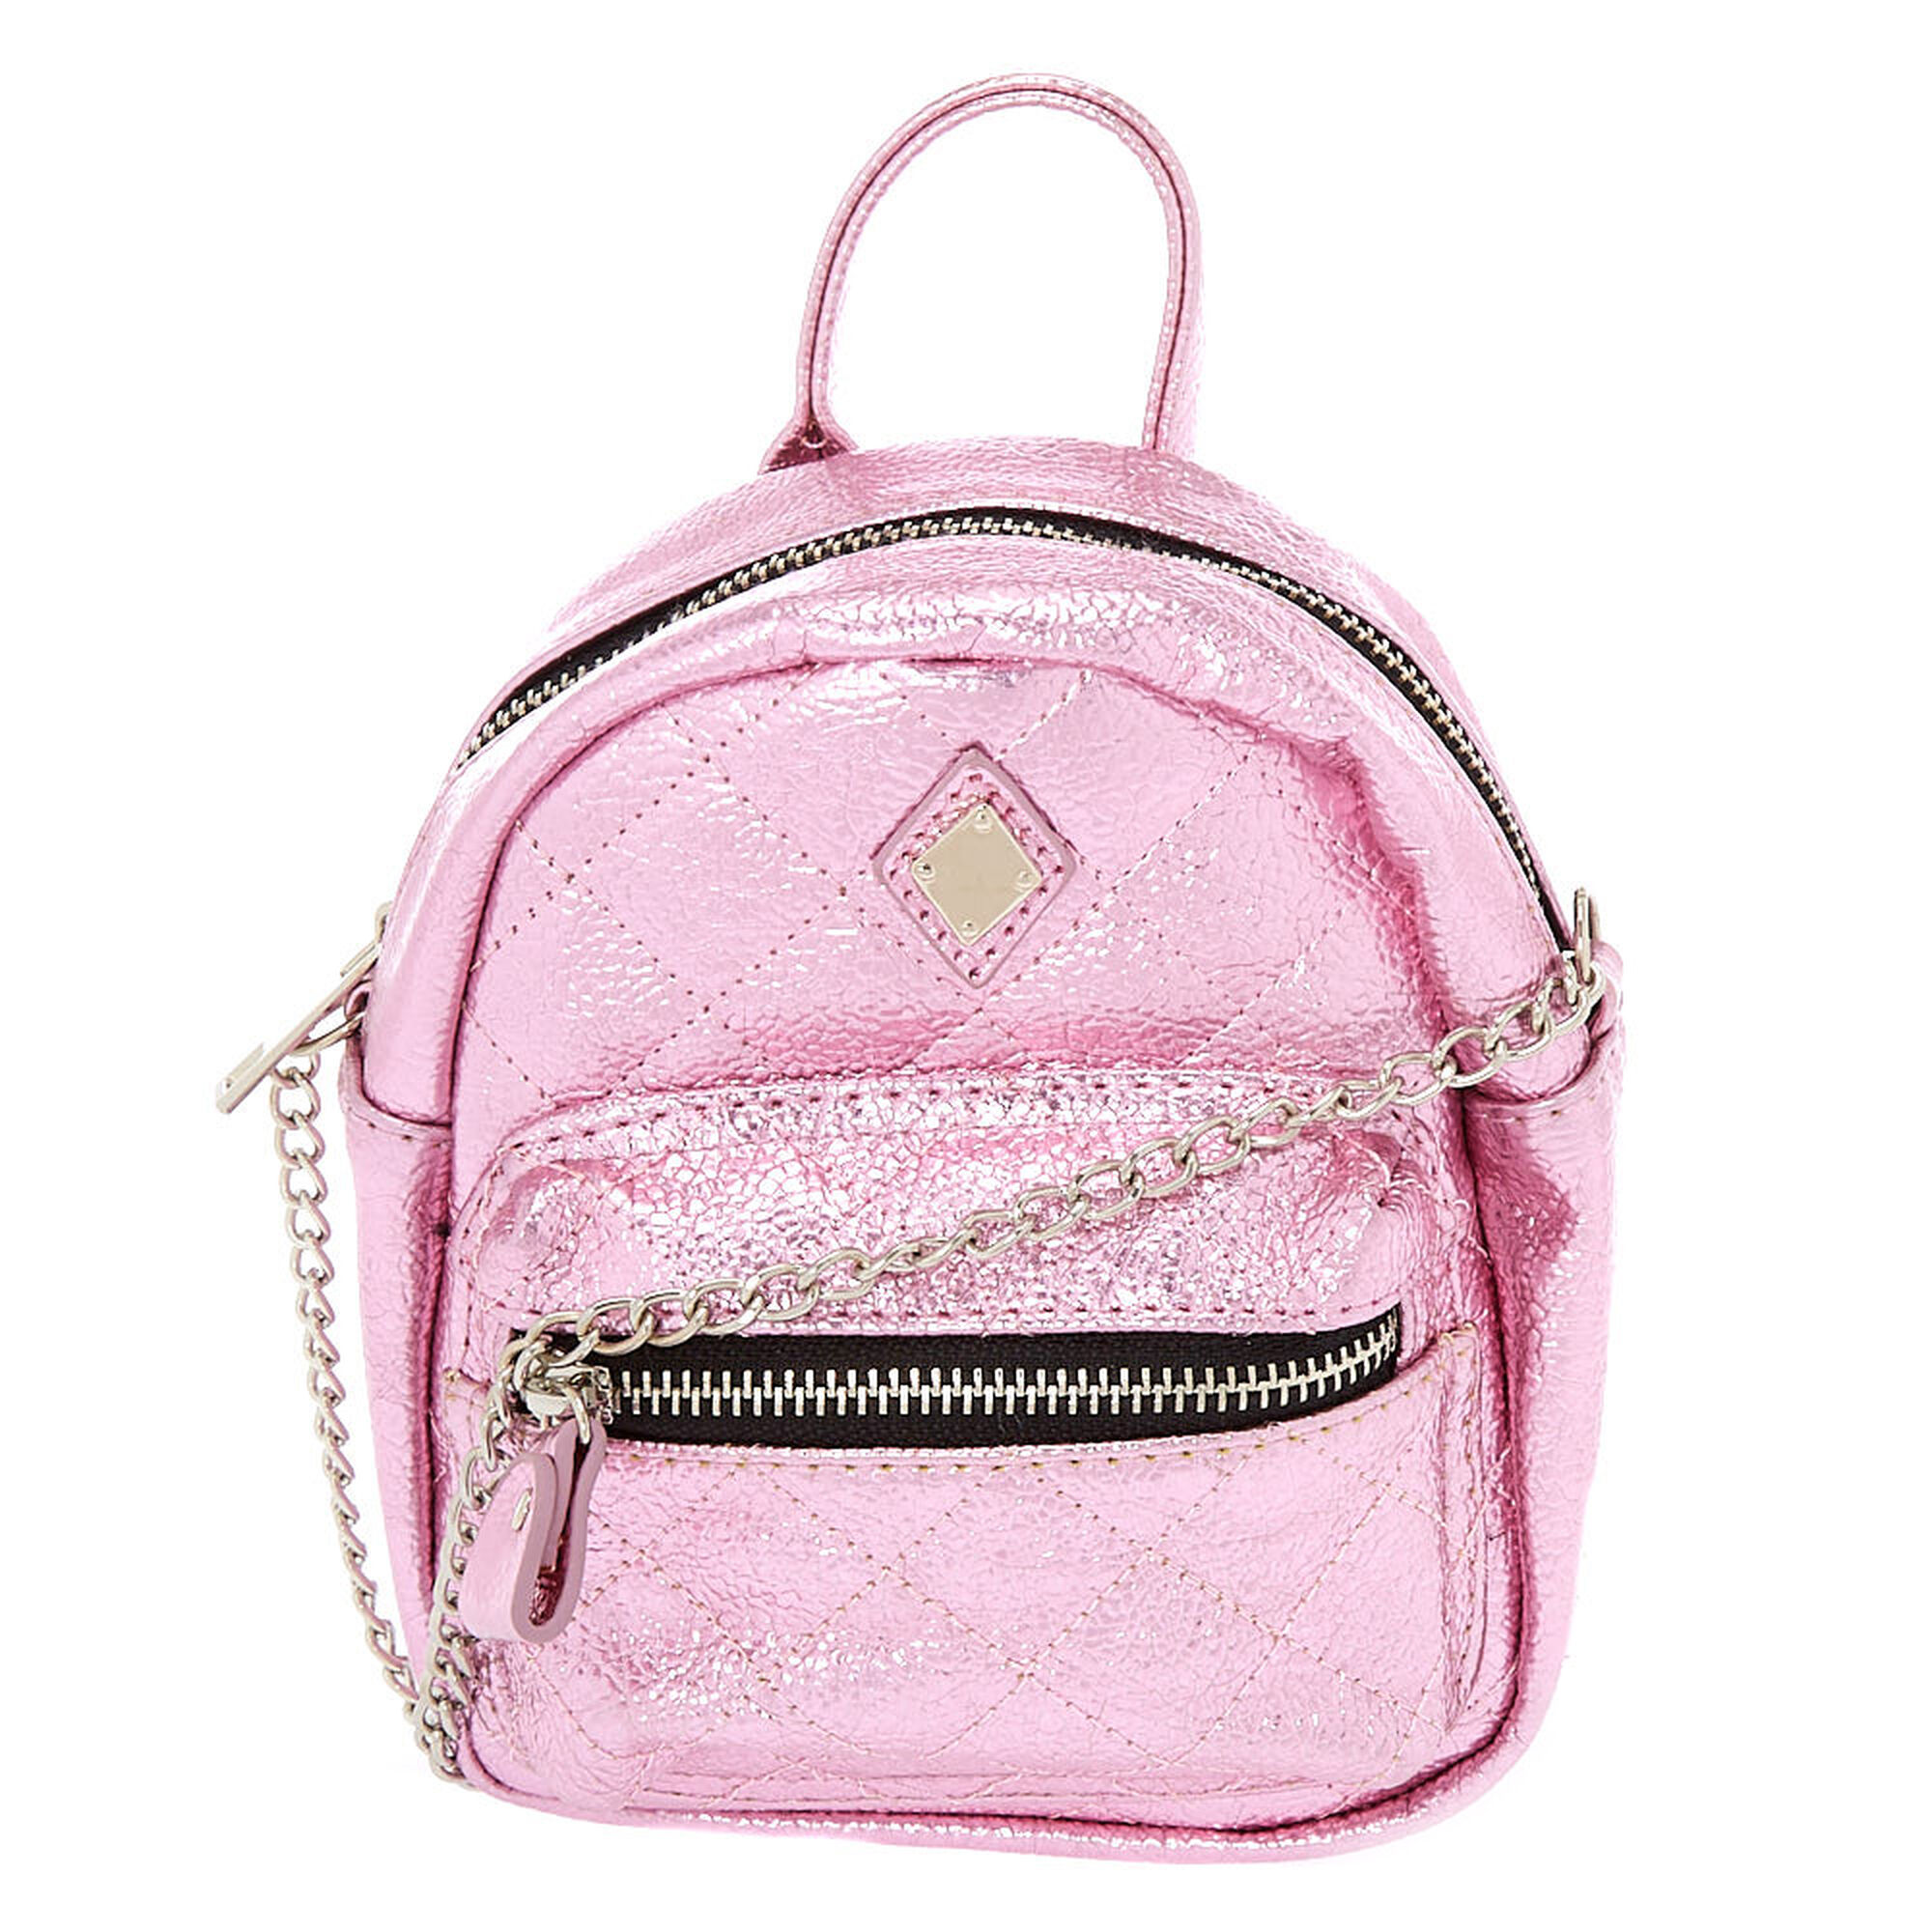 Metallic Quilted Mini Backpack Crossbody Bag Pink